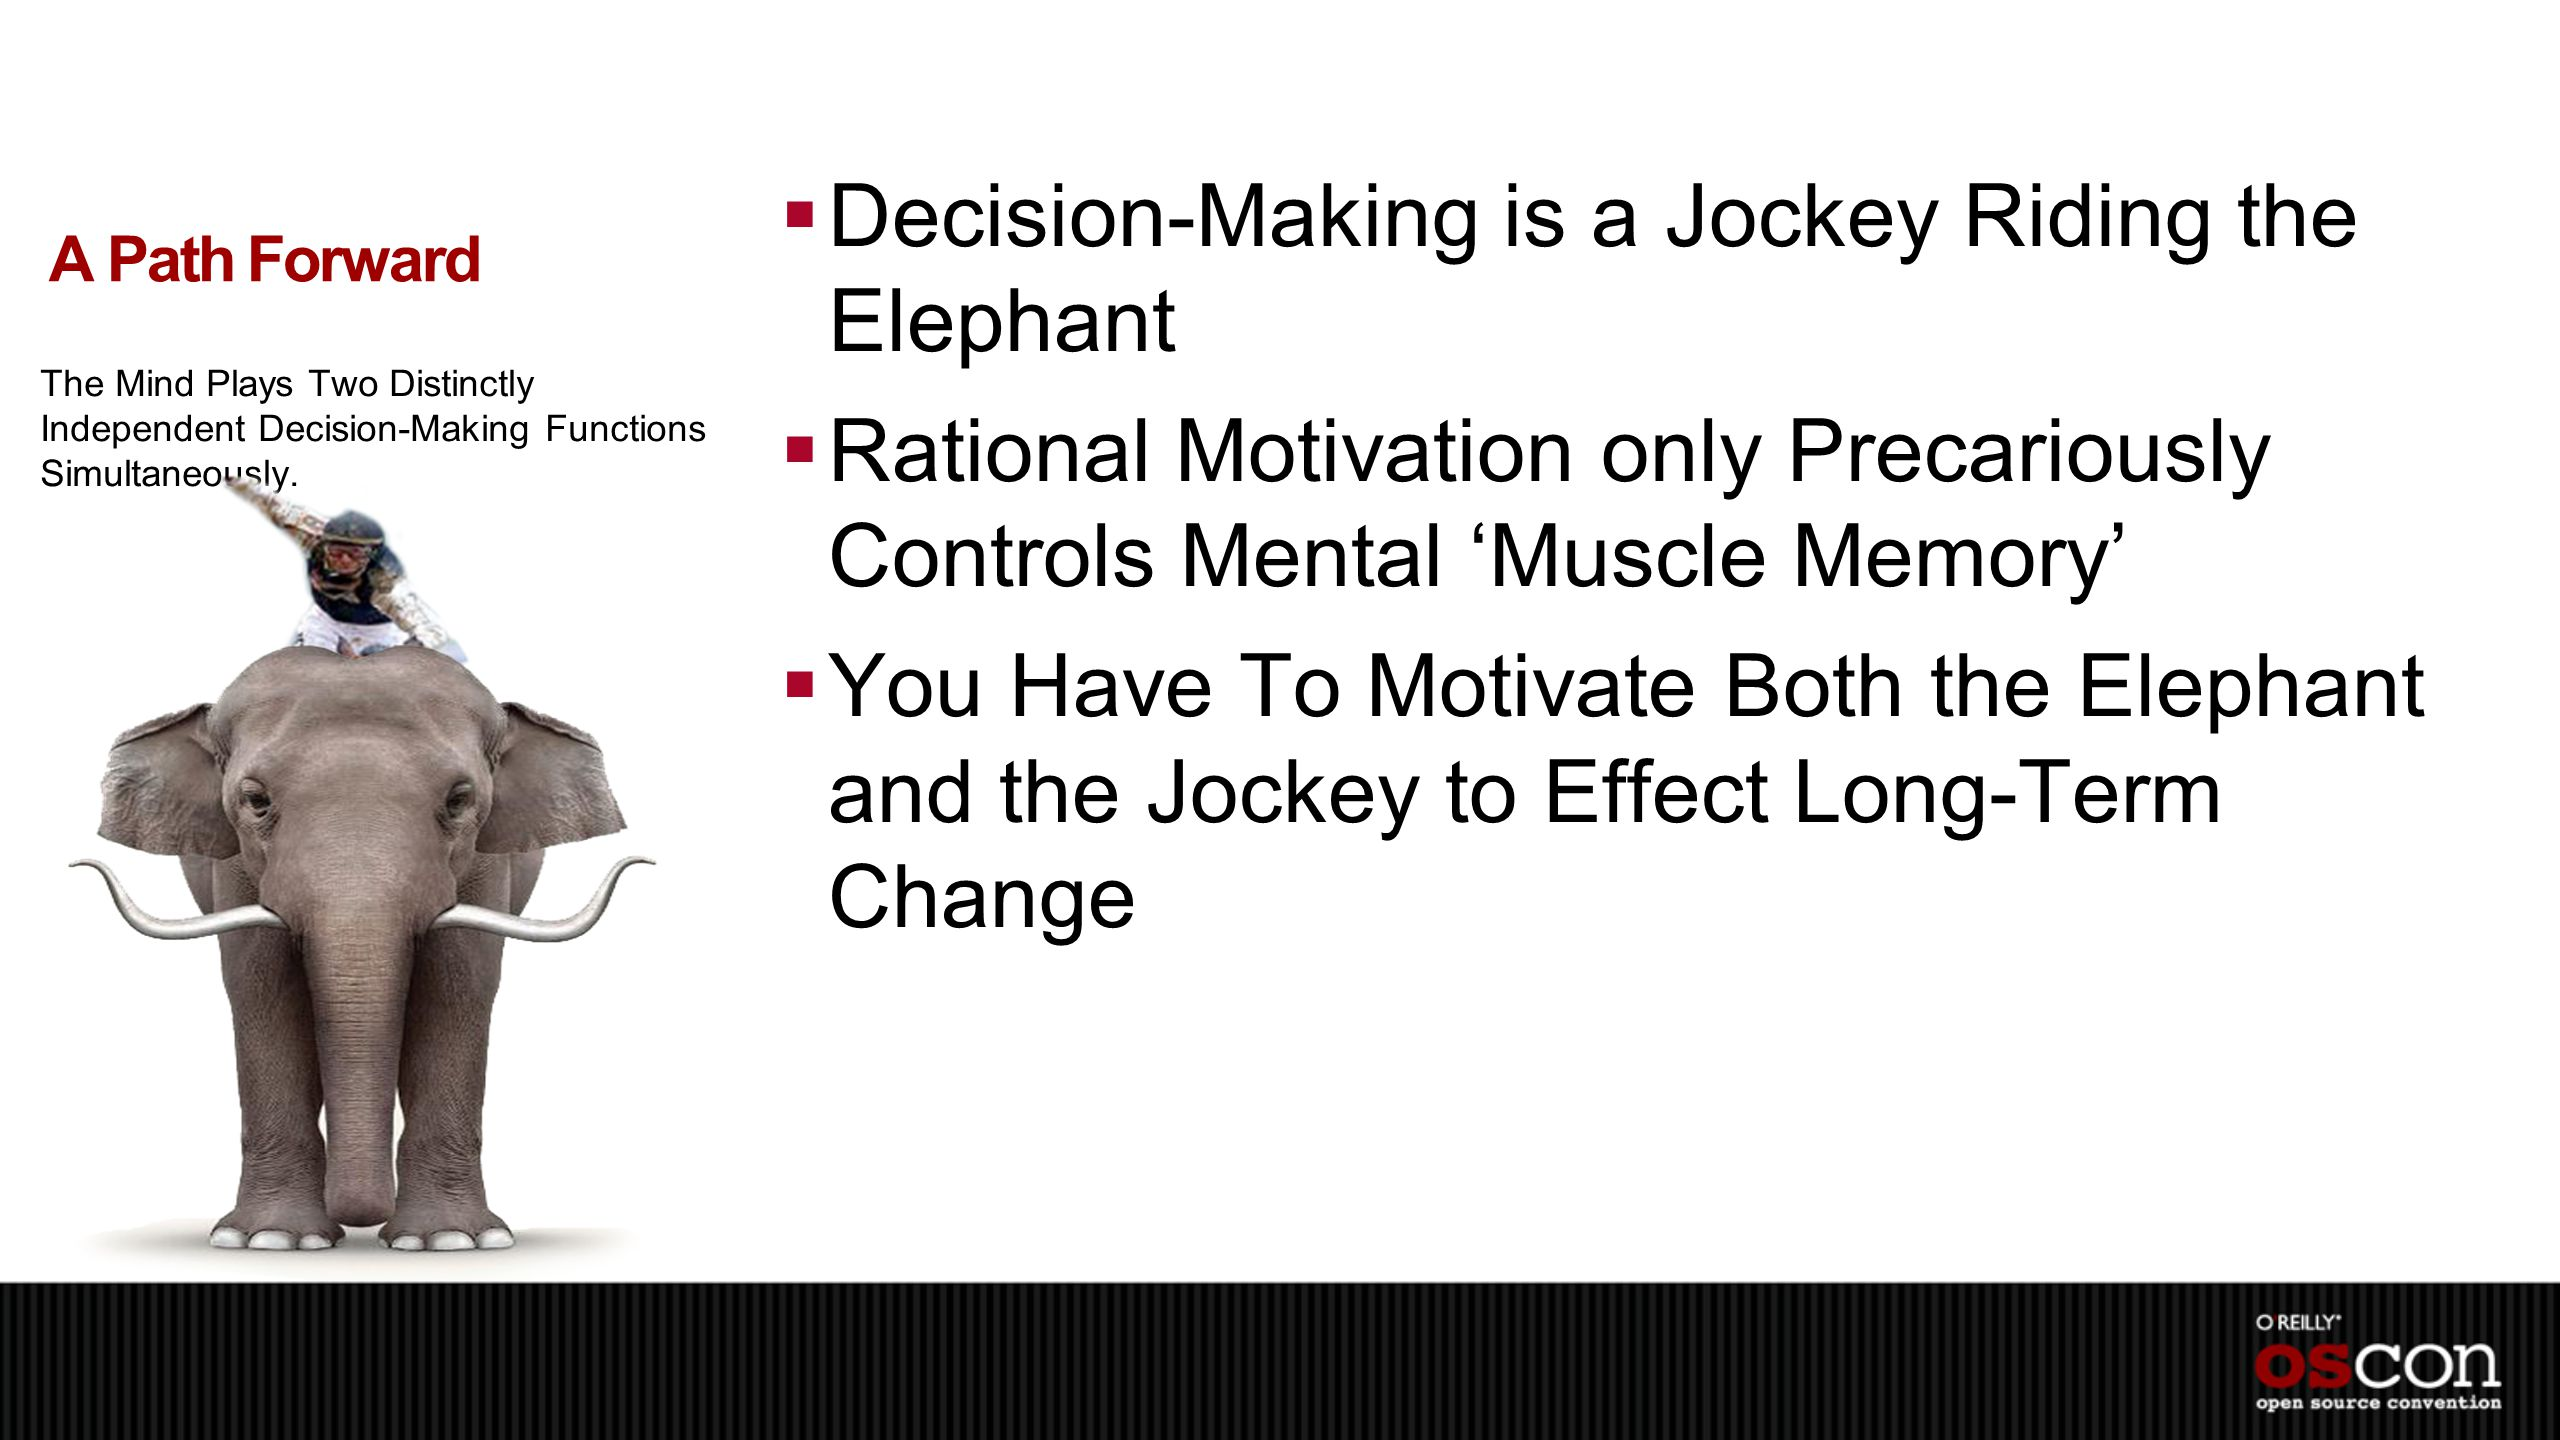  Decision-Making is a Jockey Riding the Elephant  Rational Motivation only Precariously Controls Mental 'Muscle Memory'  You Have To Motivate Both the Elephant and the Jockey to Effect Long-Term Change A Path Forward